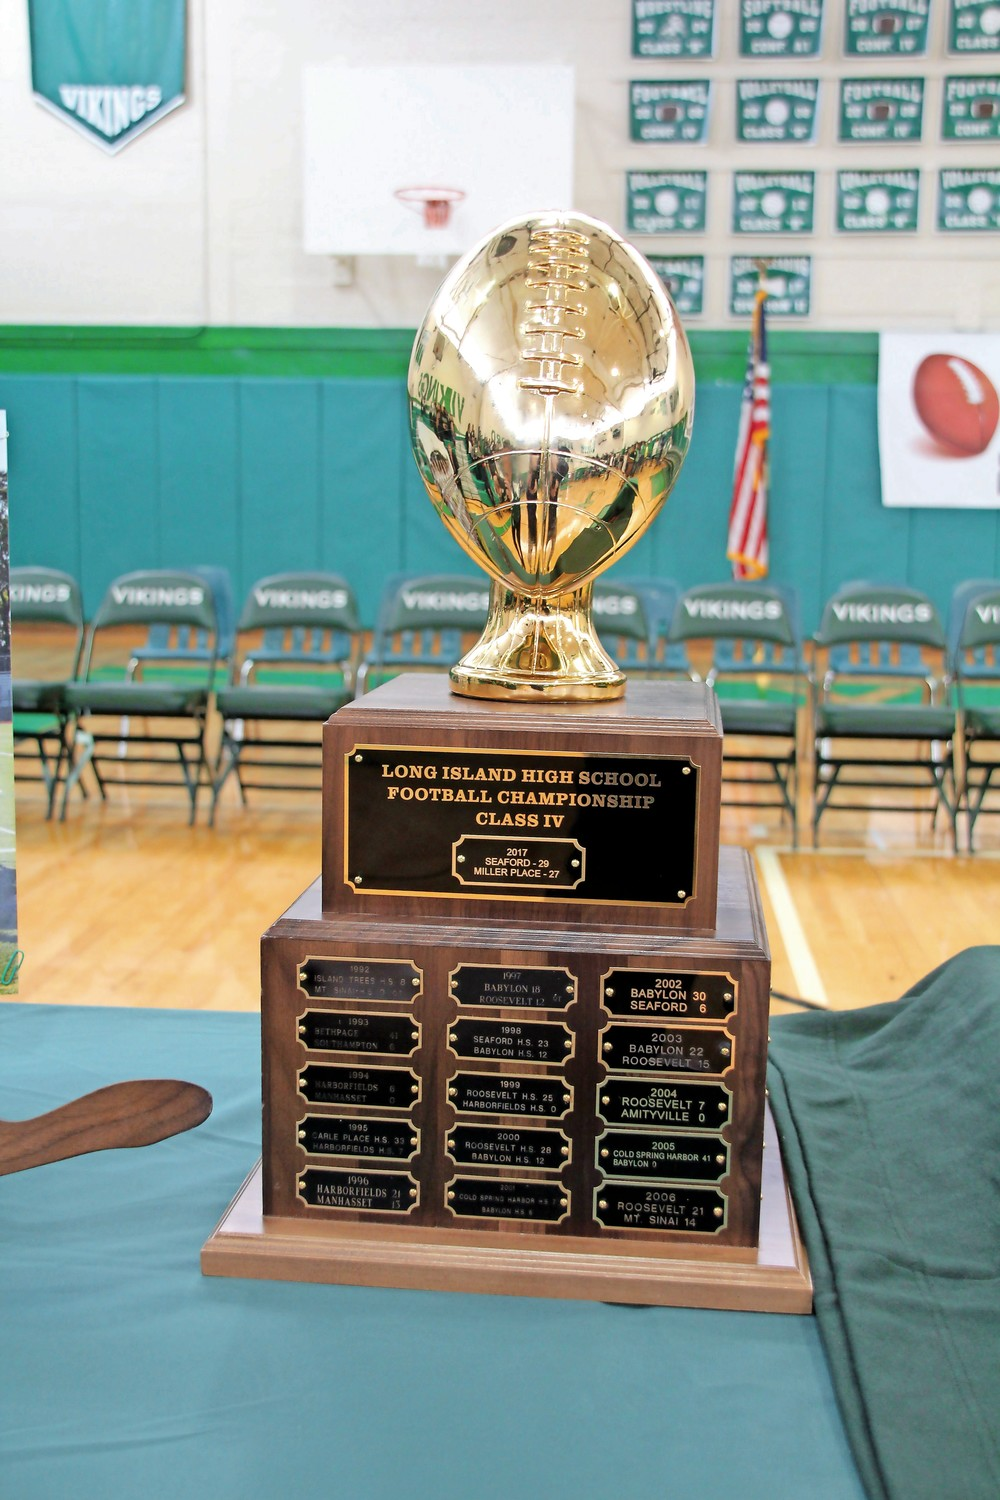 The Seaford High School football team brought home some hardware after winning the Conference IV Long Island title.